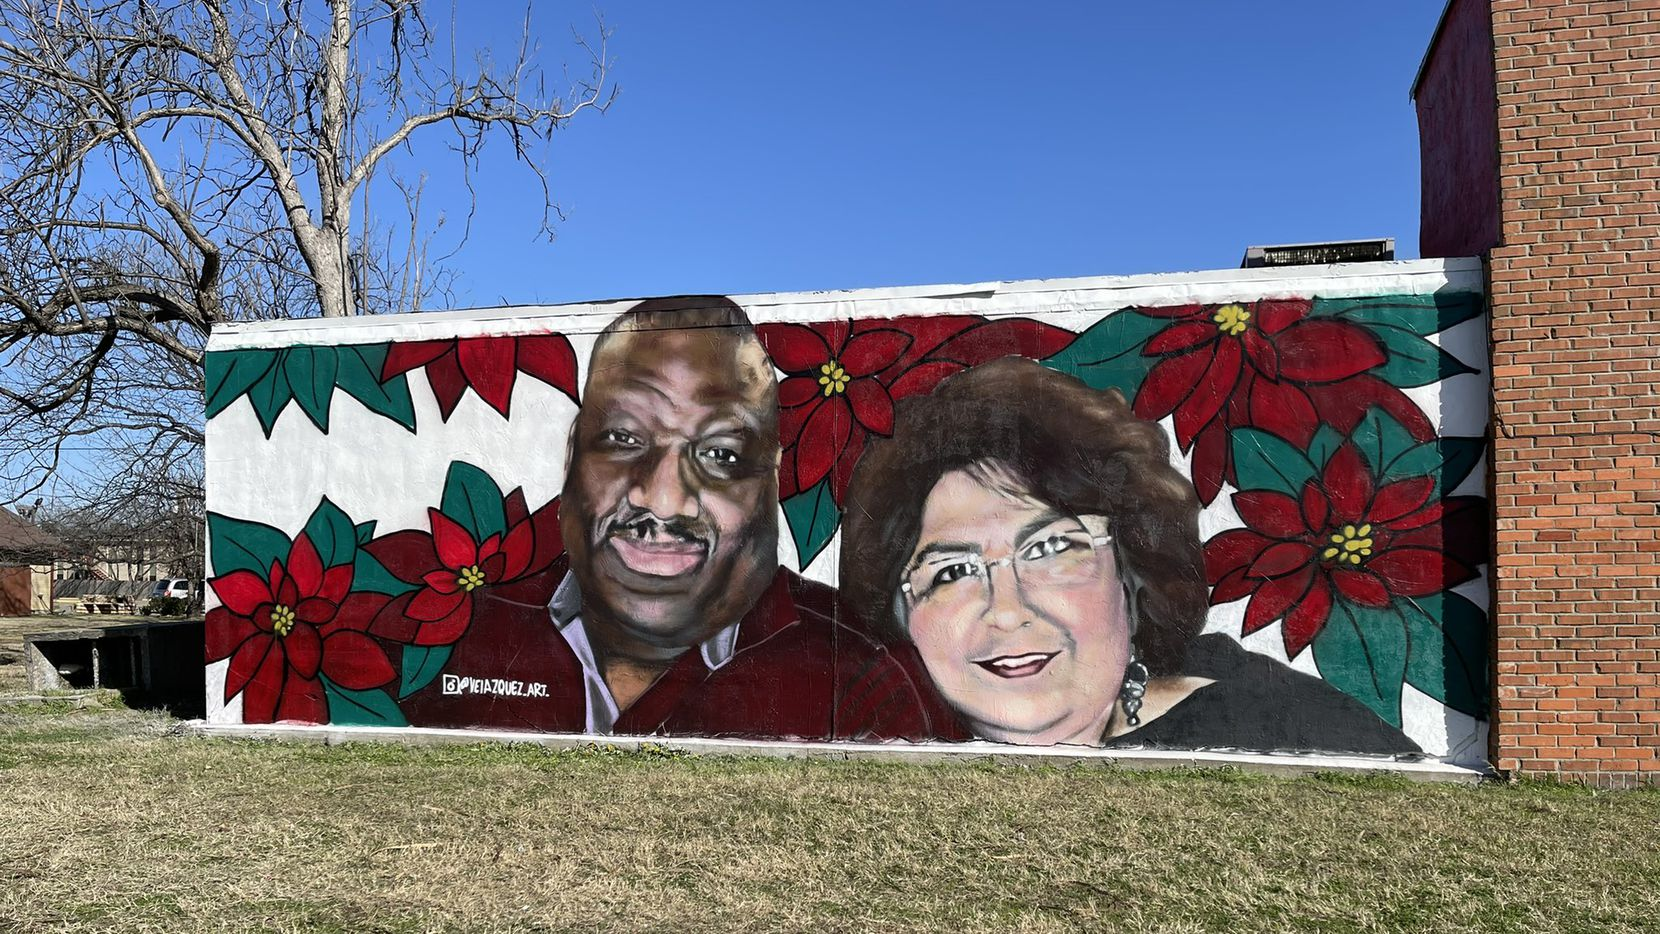 The mural of Paul and Rose Mary Blackwell on display in Grand Prairie. Along with being married, the couple were educators at Grand Prairie ISD.